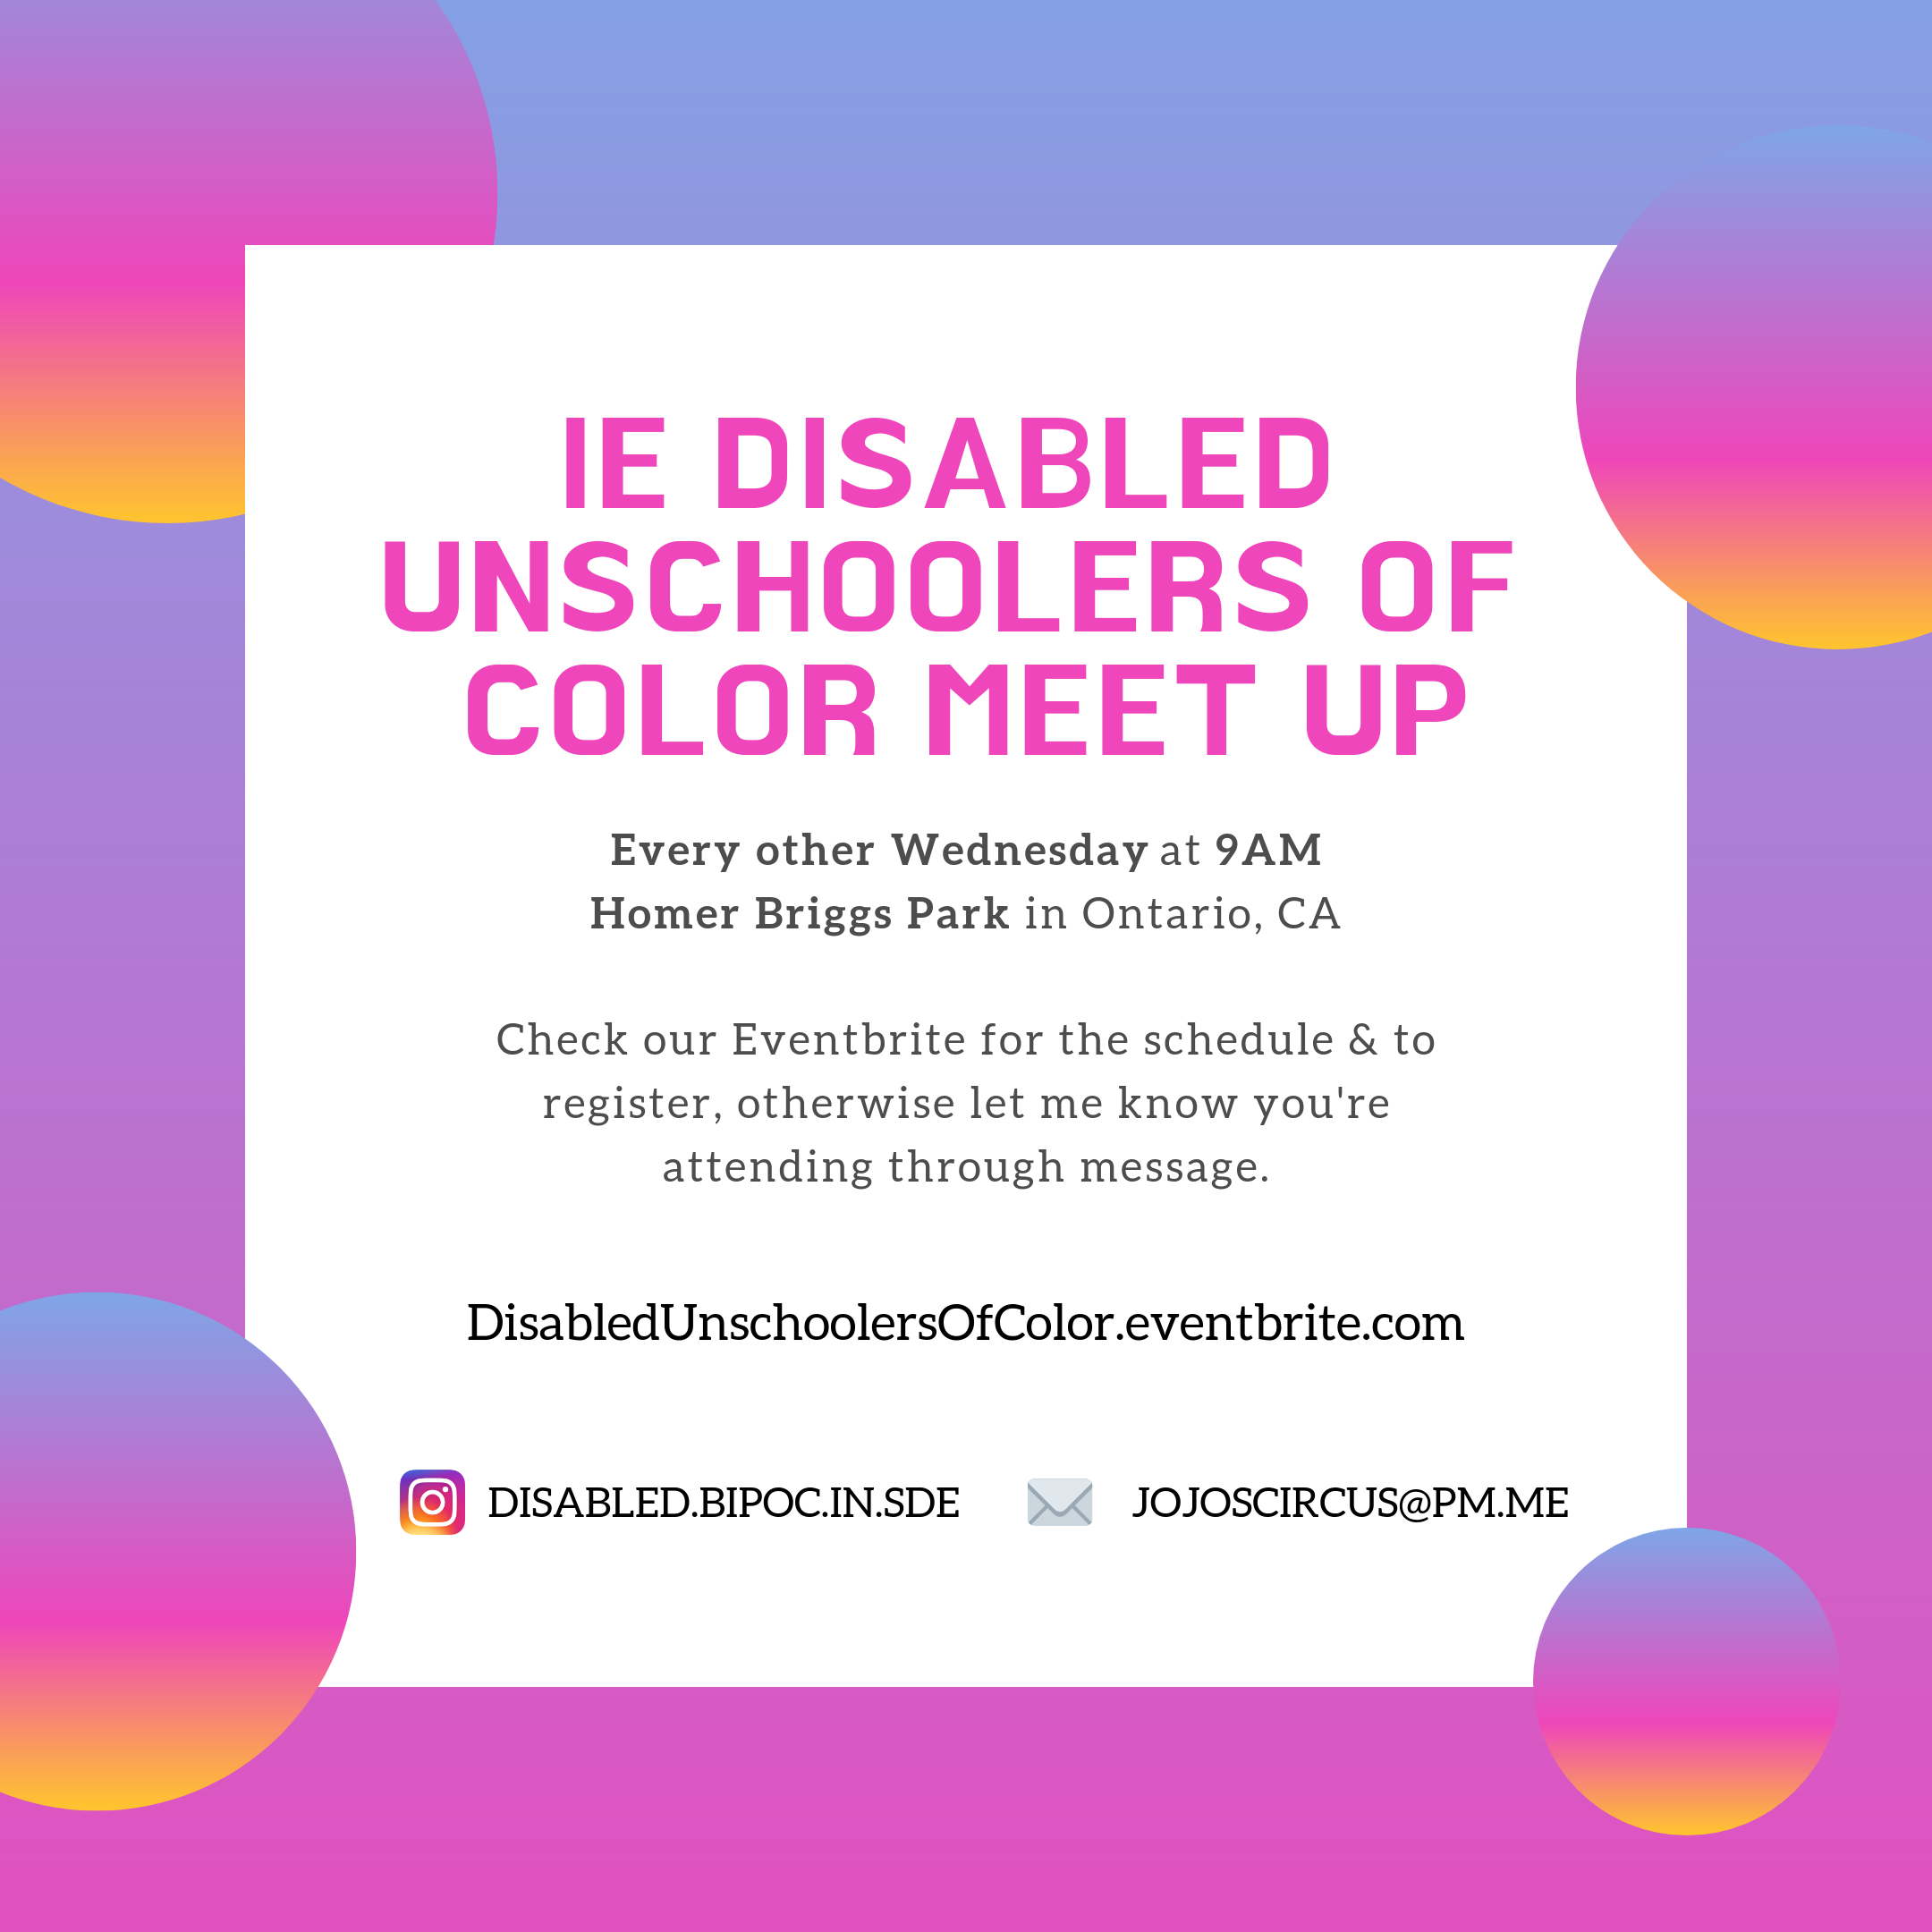 An informational image with a gradient background (purples at the top and pinks below) and 4 various sized gradient circles similar colors but with mustard color at the bottom of circles) at each corner of image, there is a large white square at the center with text that reads IE Disabled Unschoolers of Color Meet Up and relays the date/time and location I already shared. Then it says - Check our Eventbrite for schedule and to register, otherwise send a message if you're attending. The content towards the bottom includes our Eventbrite link, our Instagram handle and email.